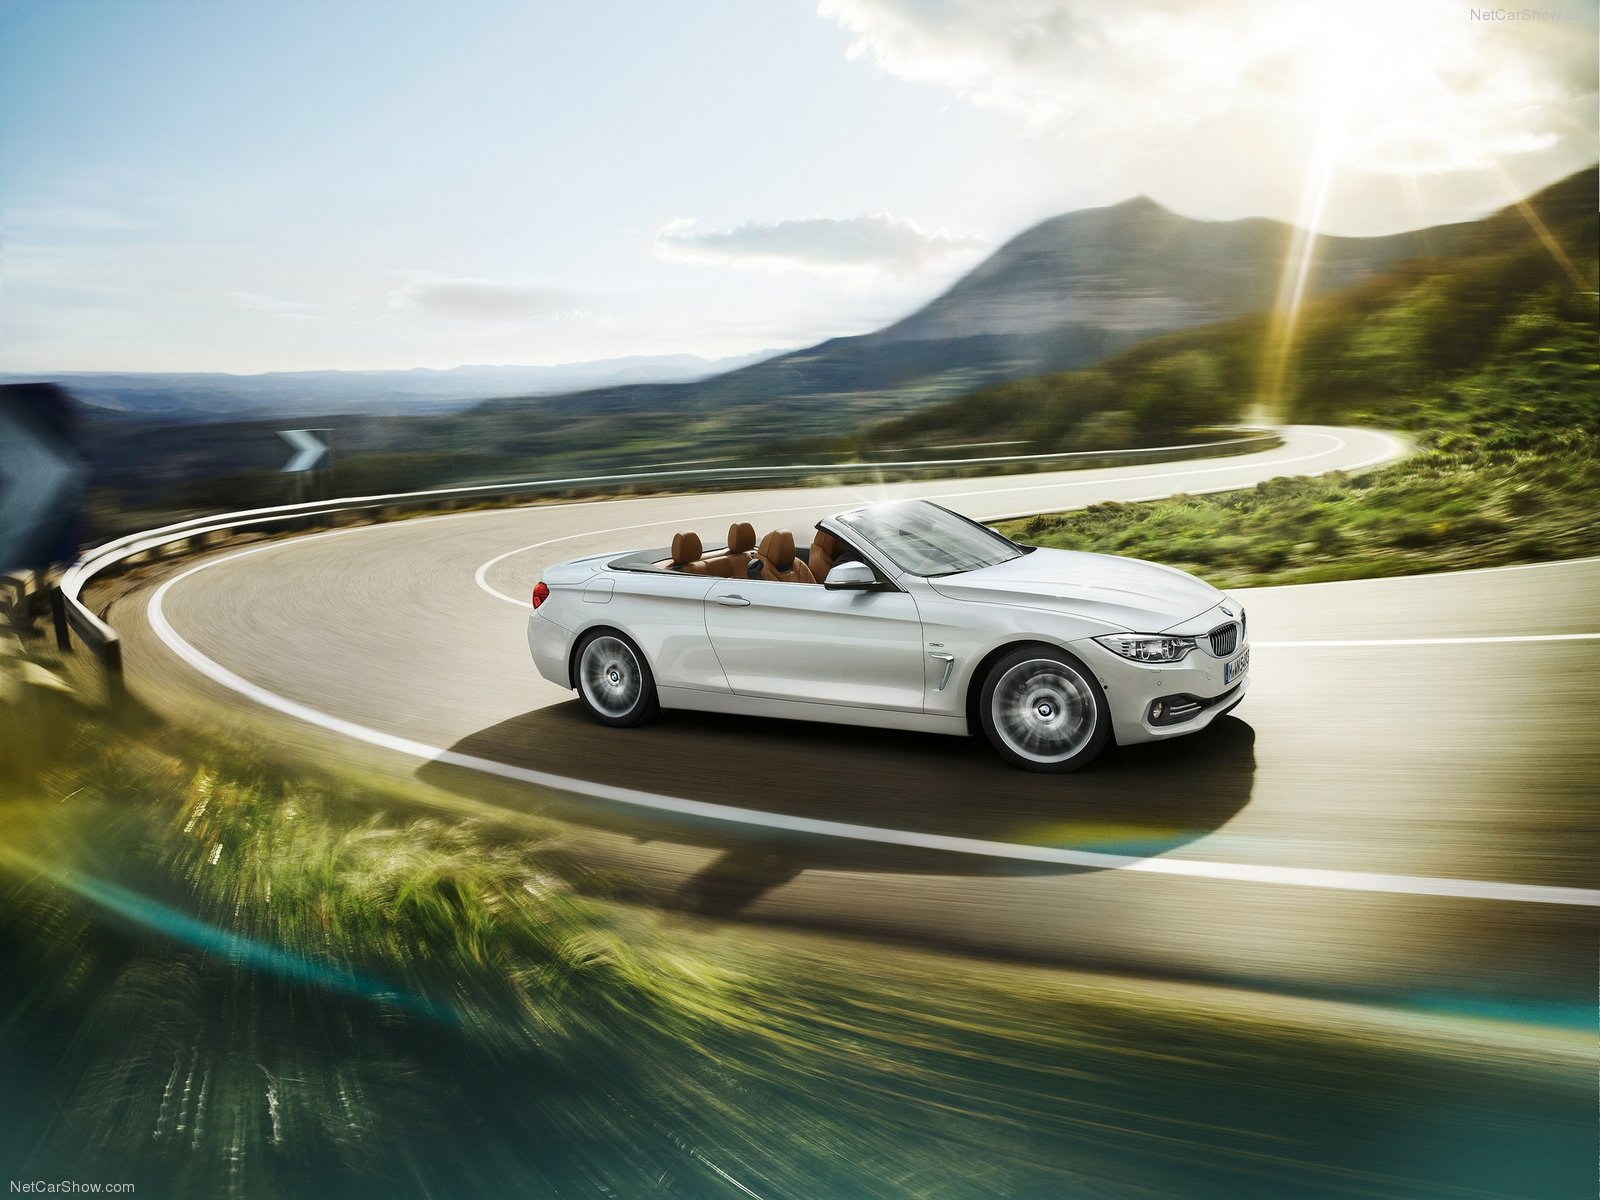 BMW 4Series Convertible photos  PhotoGallery with 16 pics